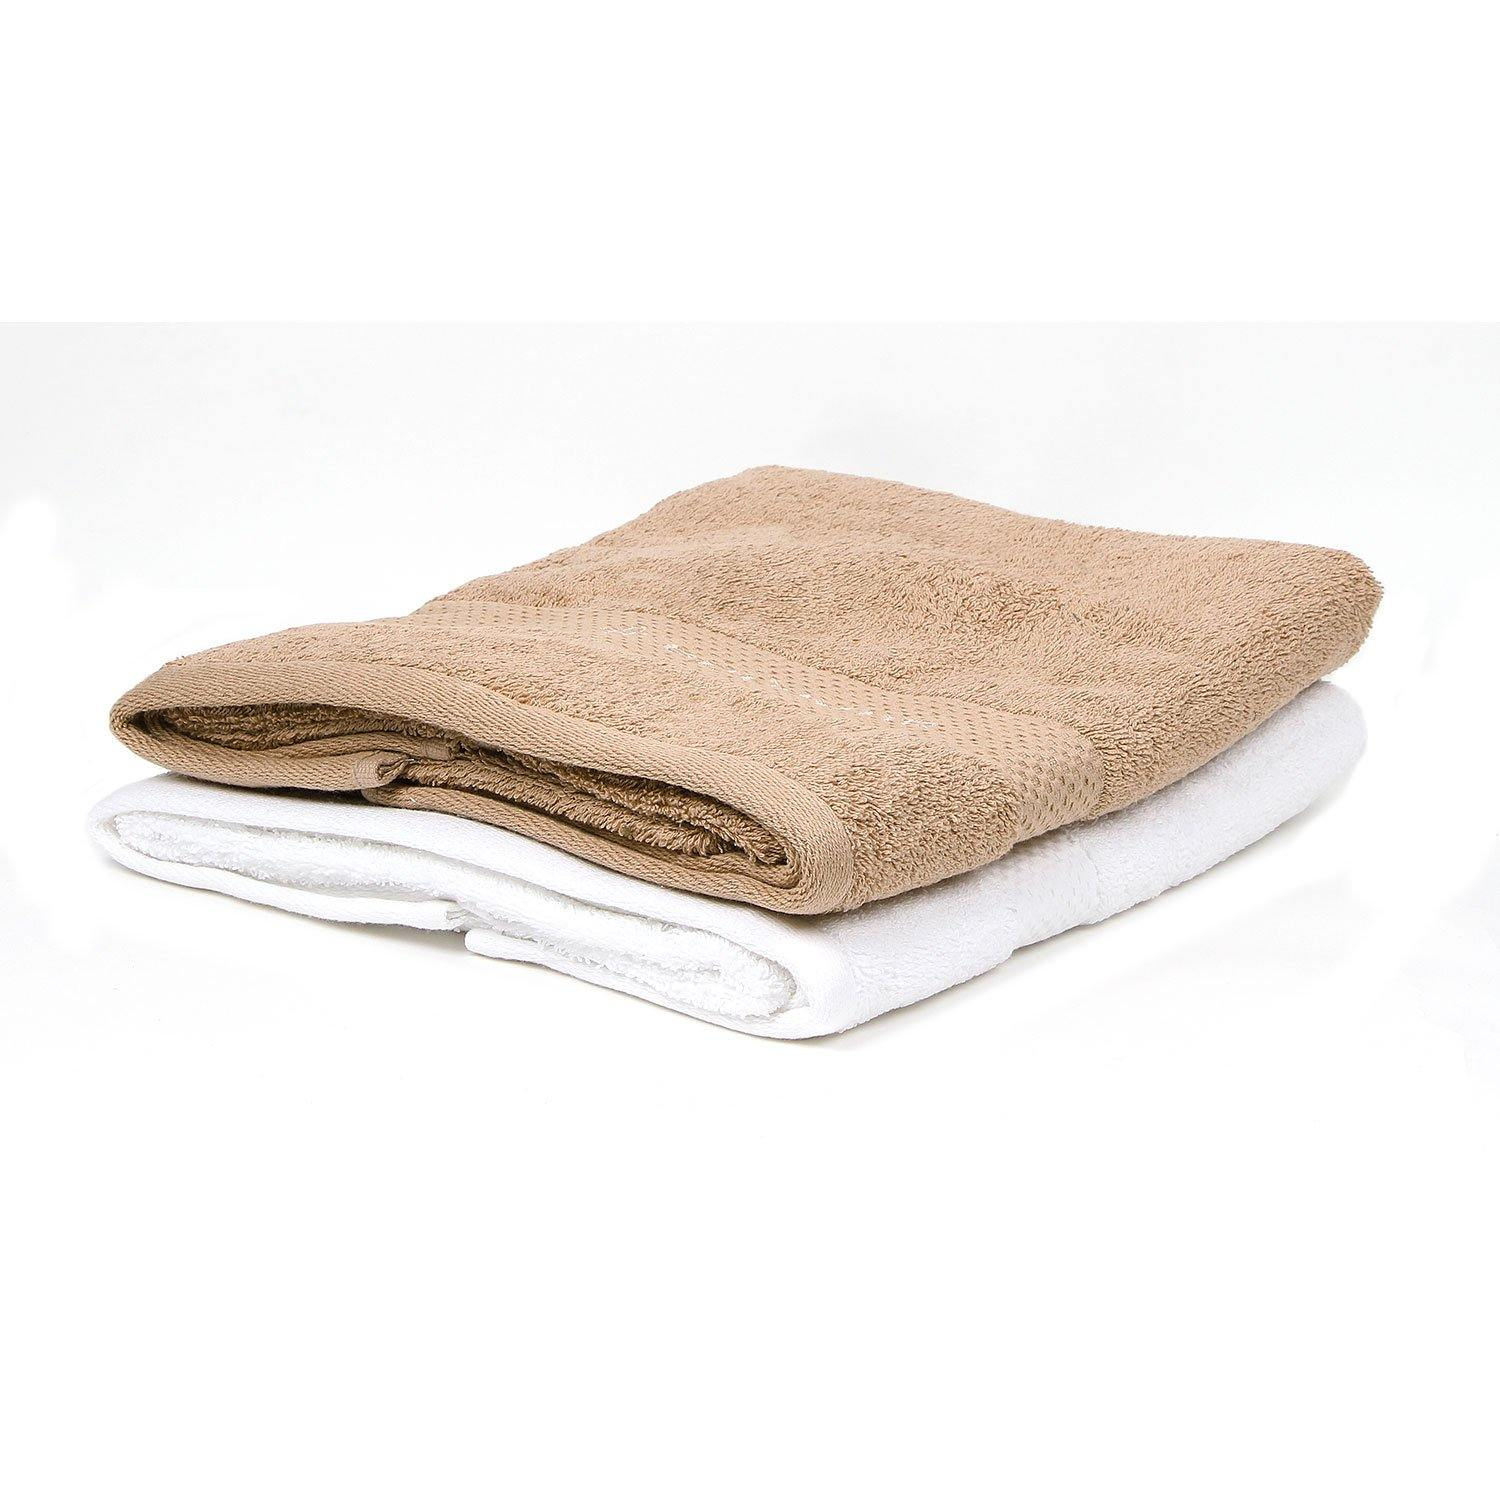 Bath Towel Set for Men-Brown & White-Pack Of 2